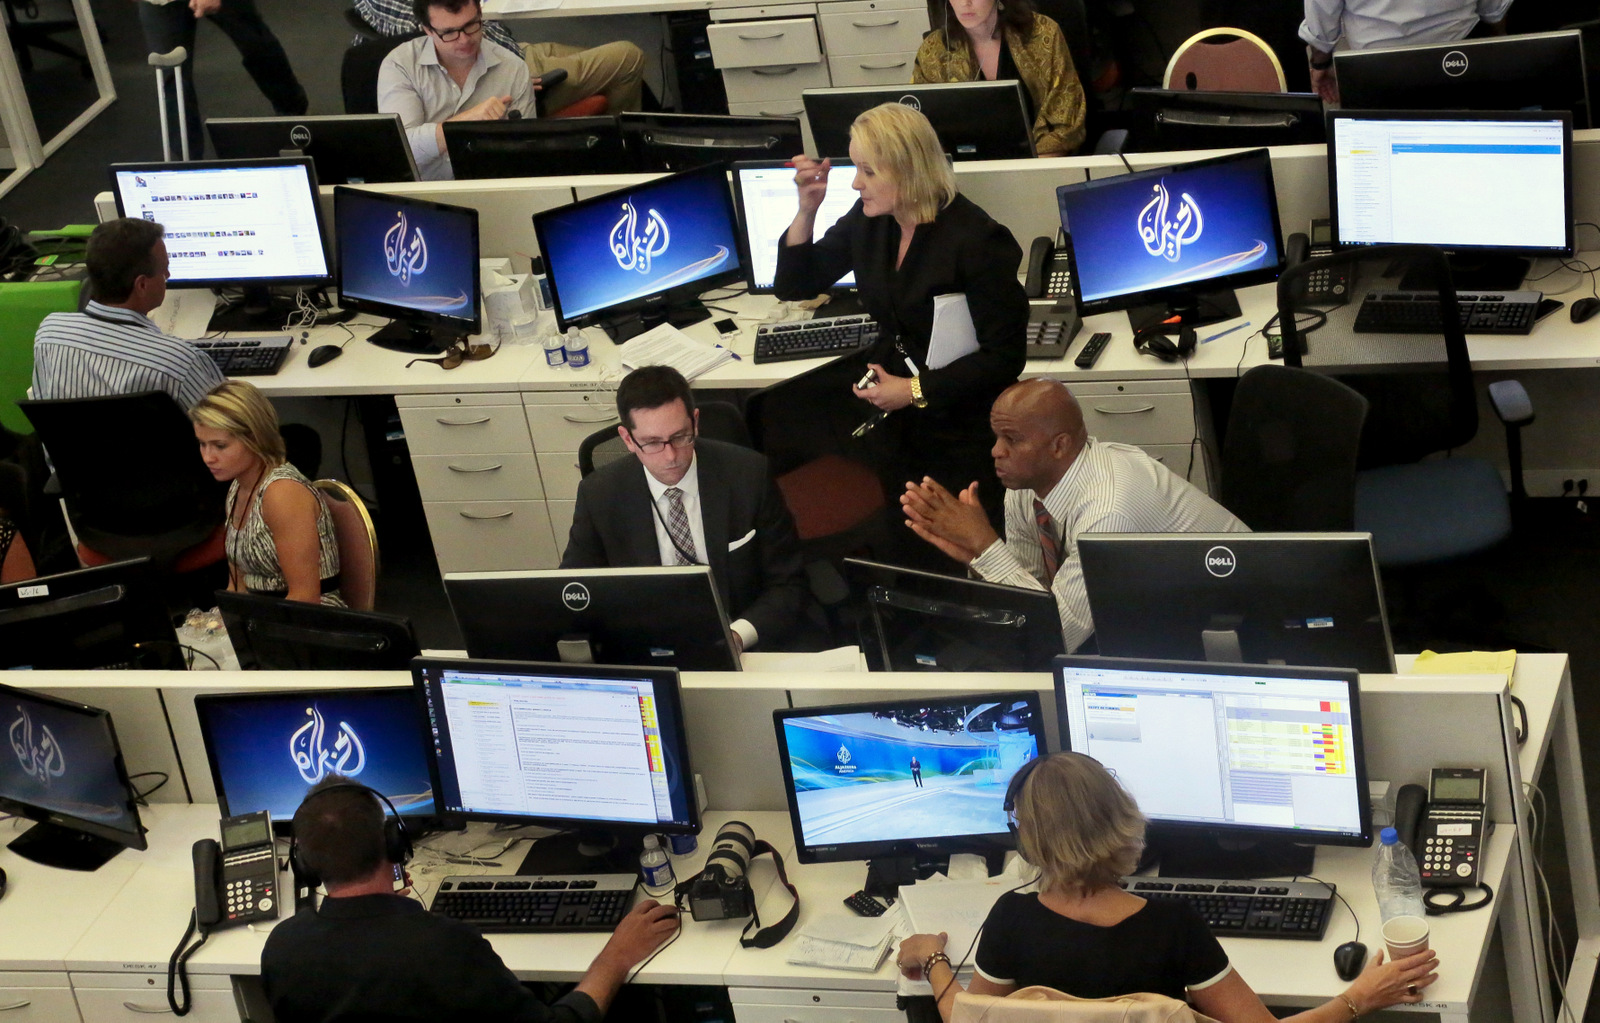 Al-Jazeera America editorial newsroom staff preparing for their first broadcast in New York. (AP/Bebeto Matthews)